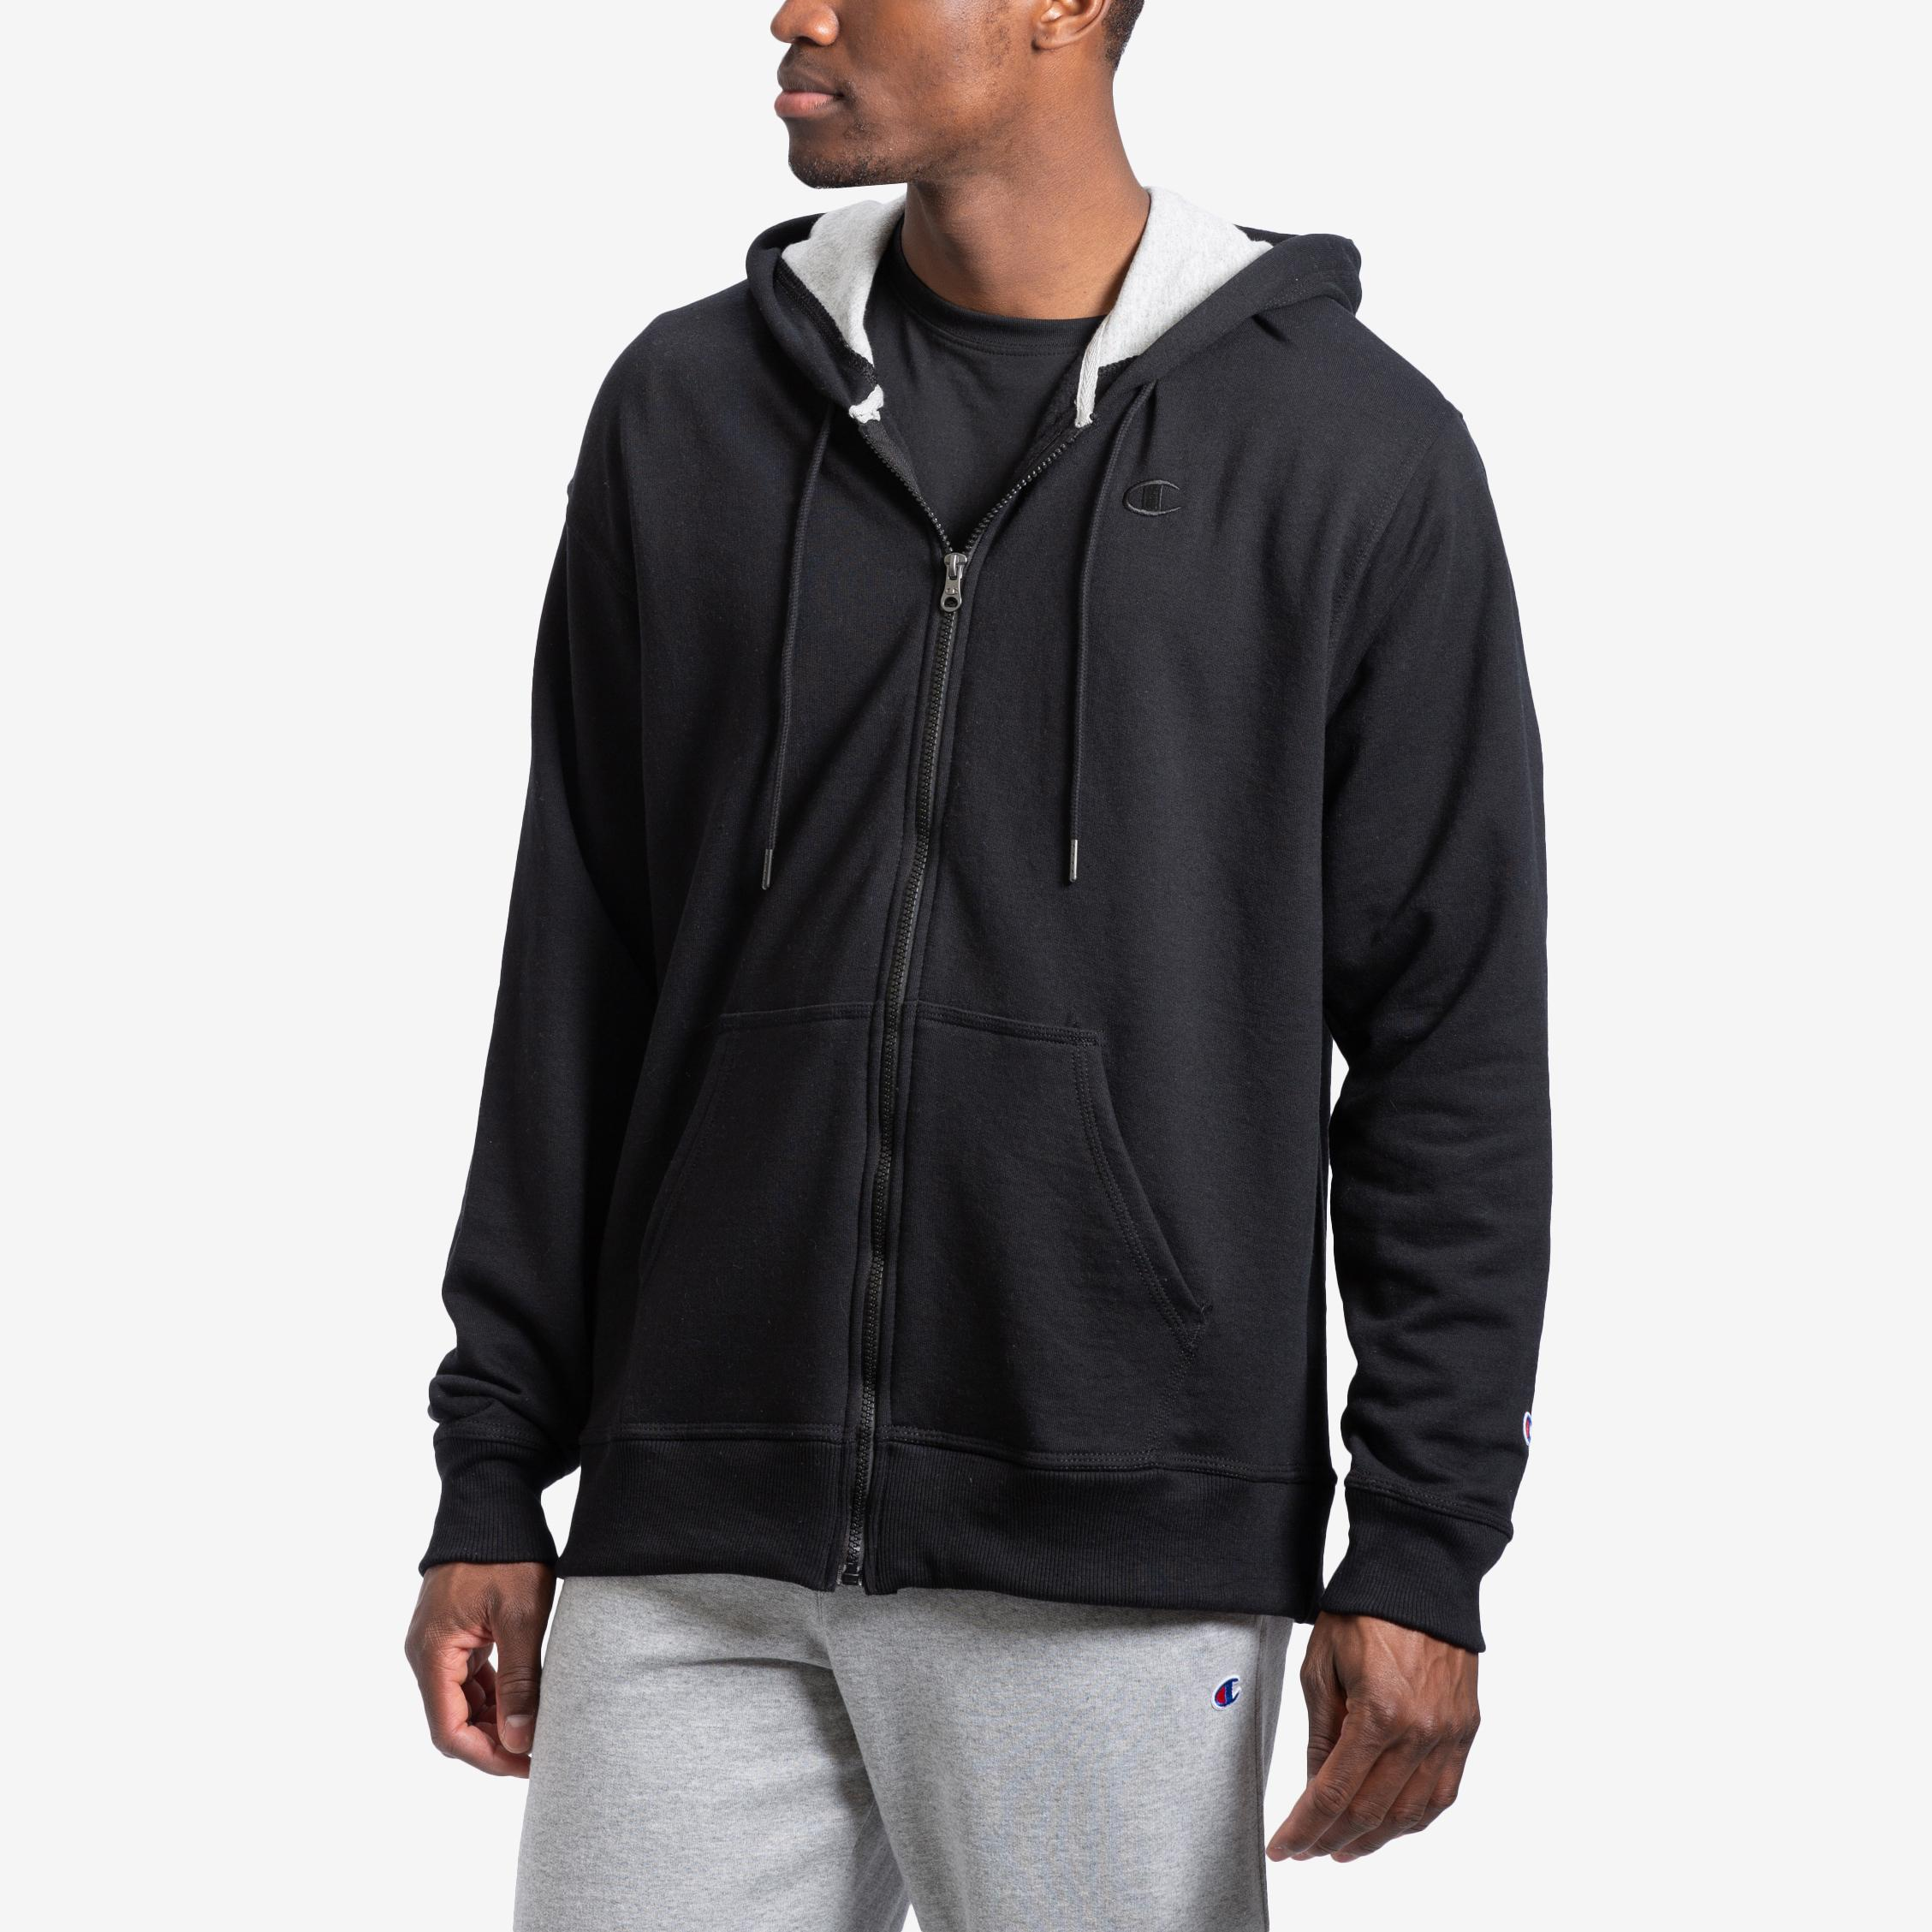 Men's Powerblend Sweats Full Zip Jacket